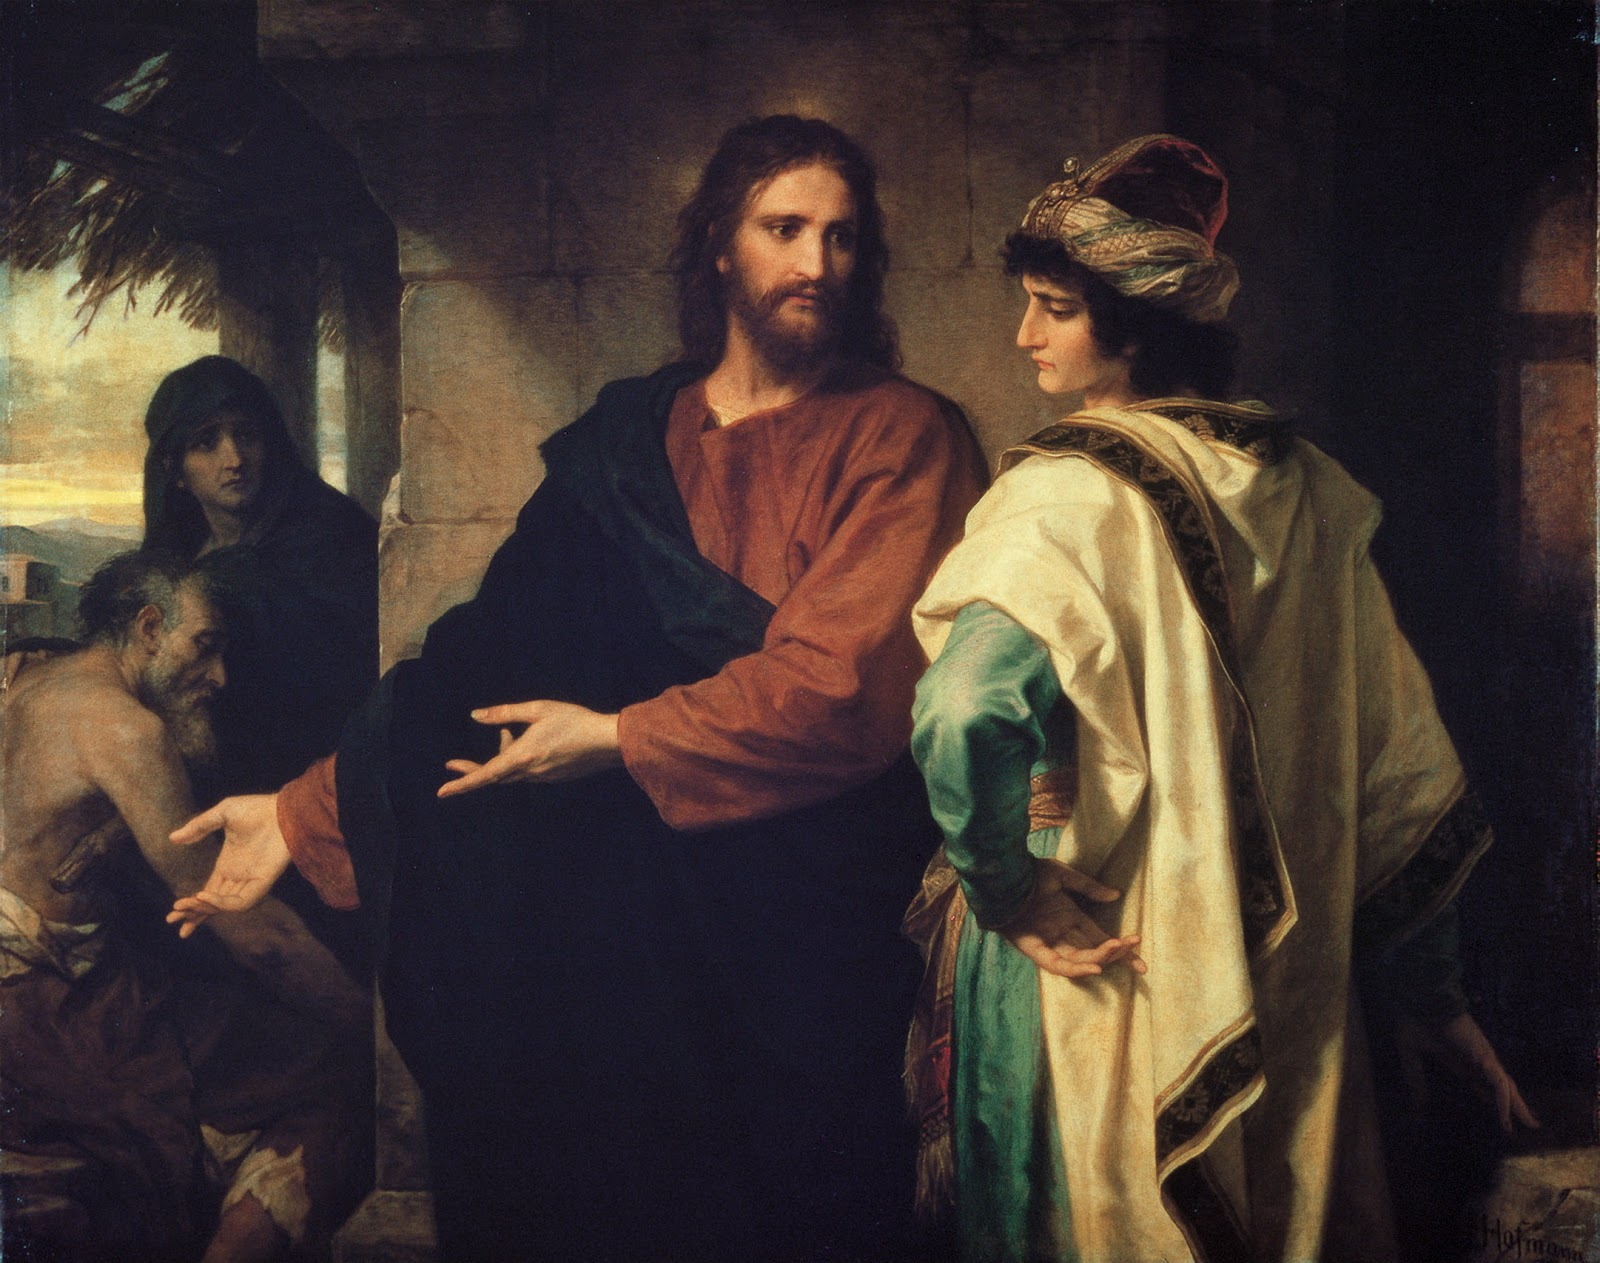 Heinrich Hofmann (1824 - 1911), Christ and the Rich Young Ruler.